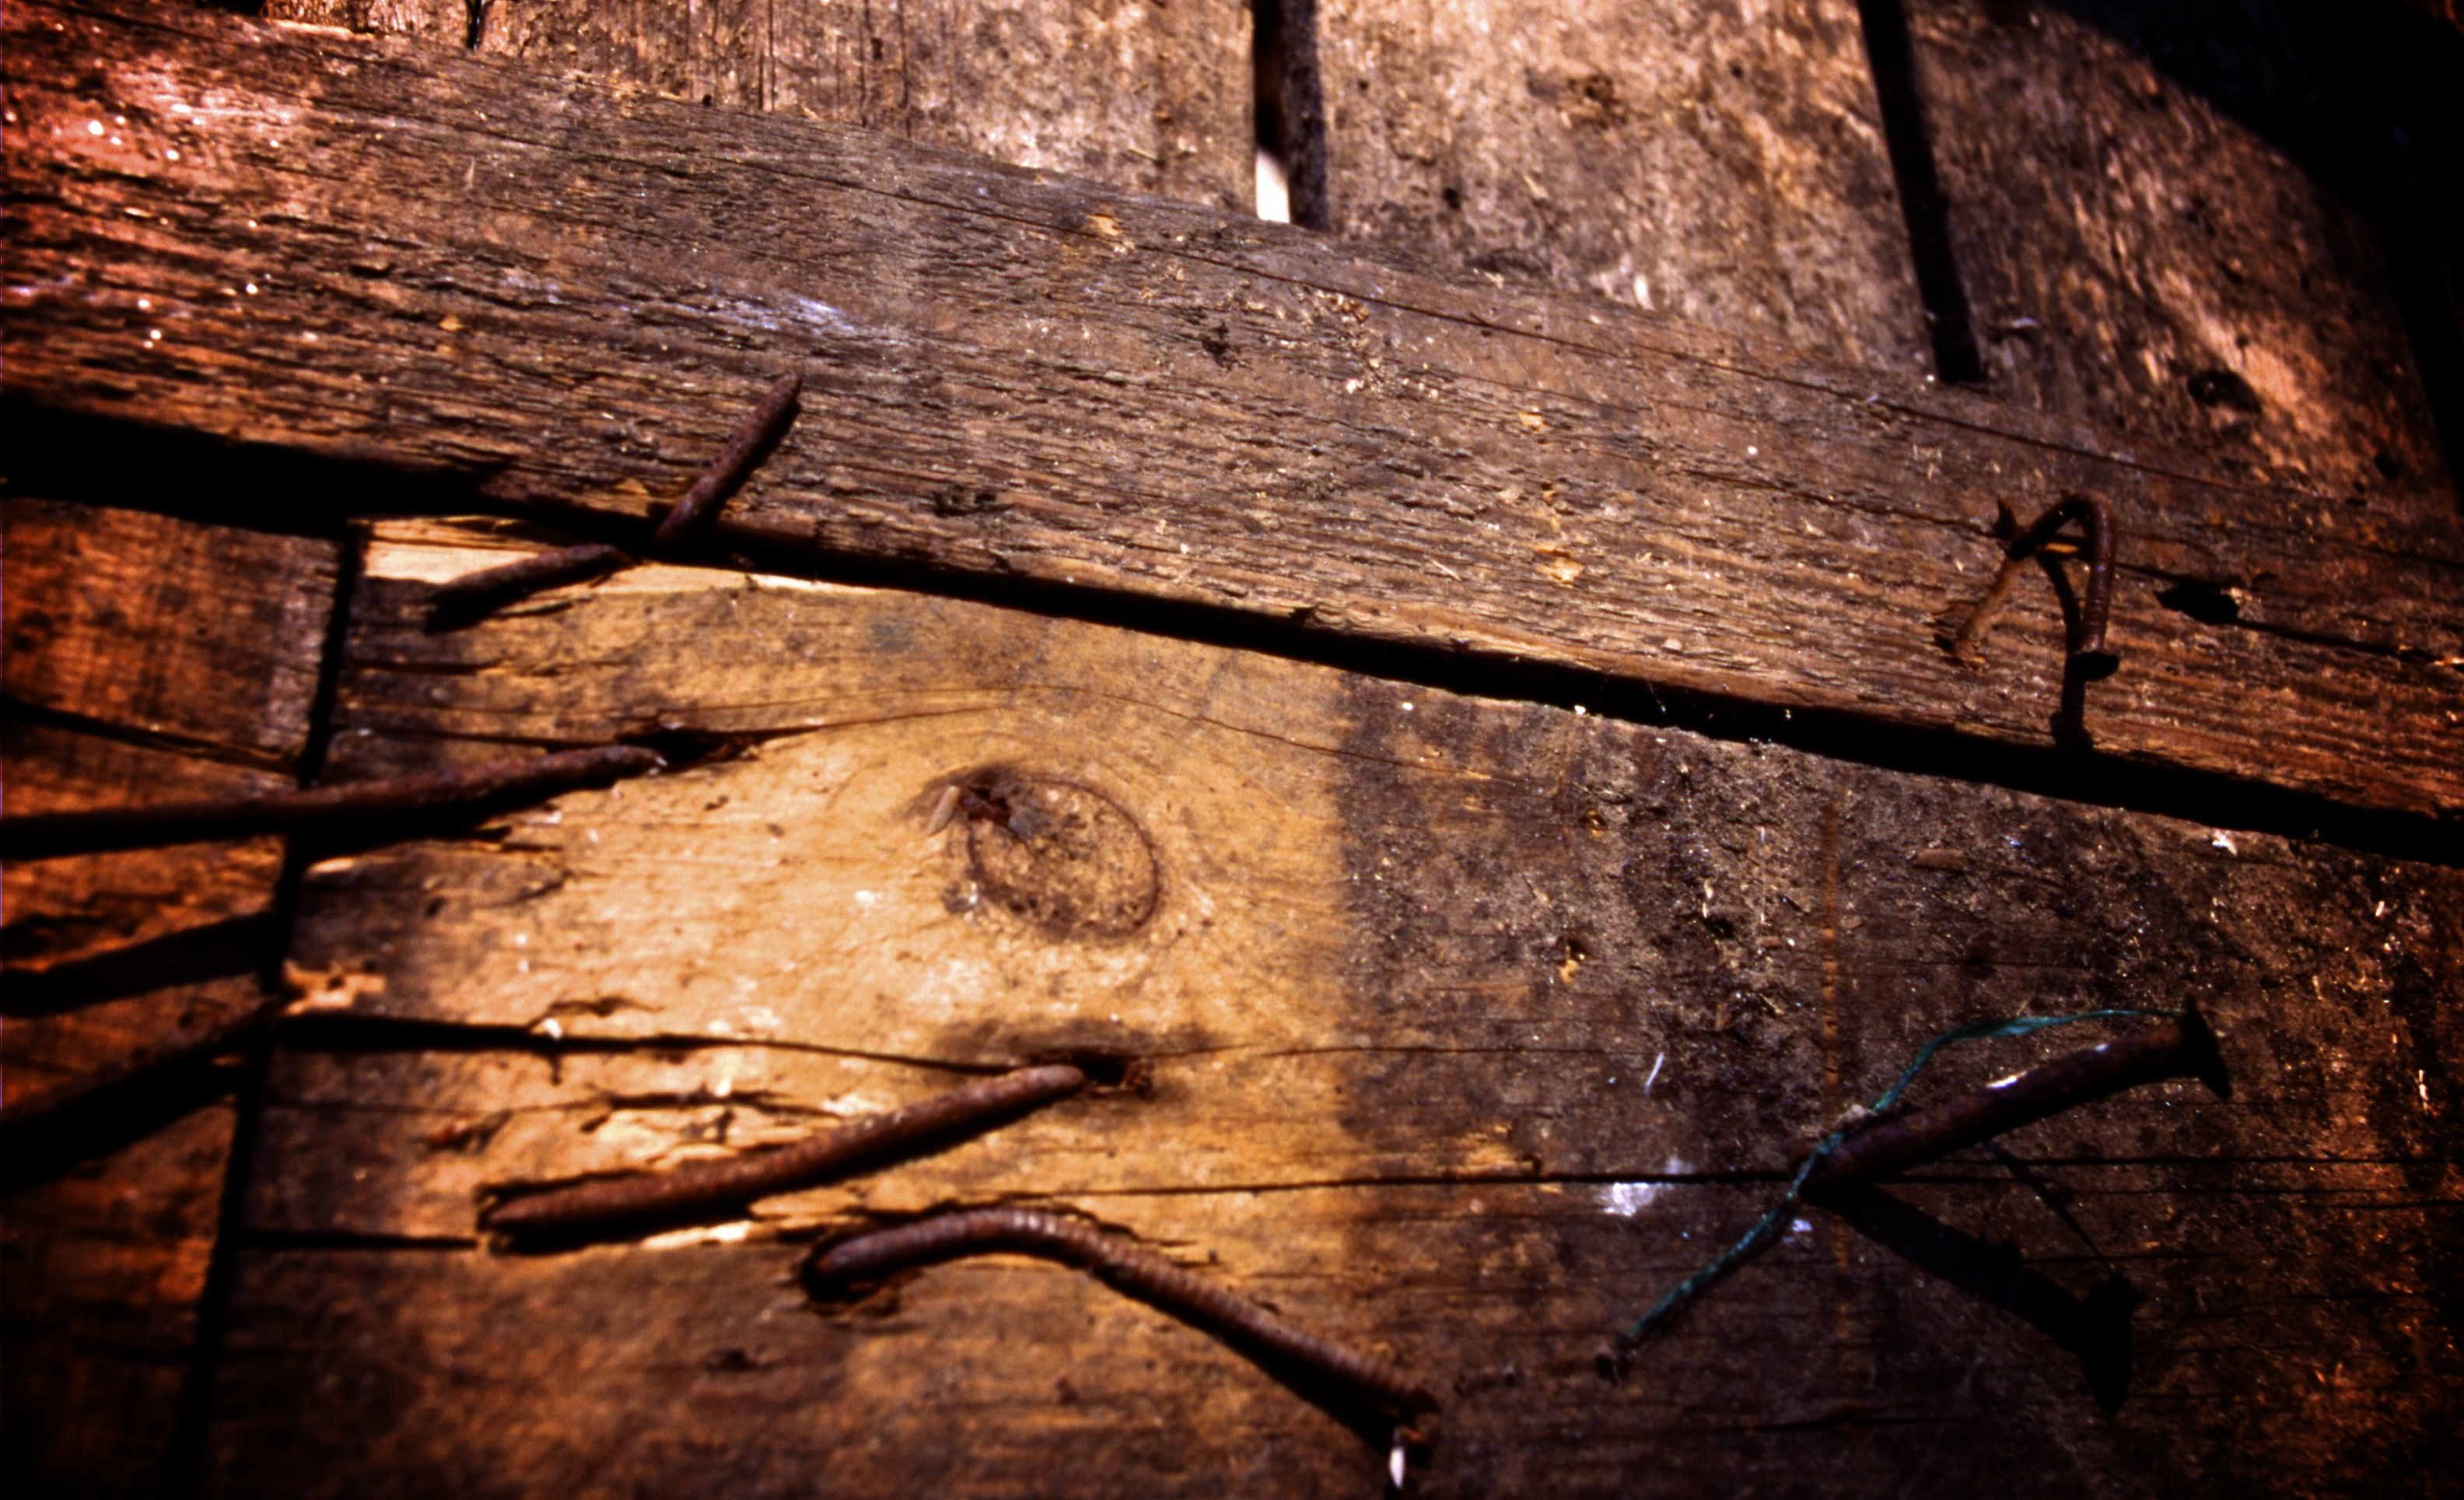 9 Rustic Hd Wallpapers Backgrounds Wallpaper Abyss